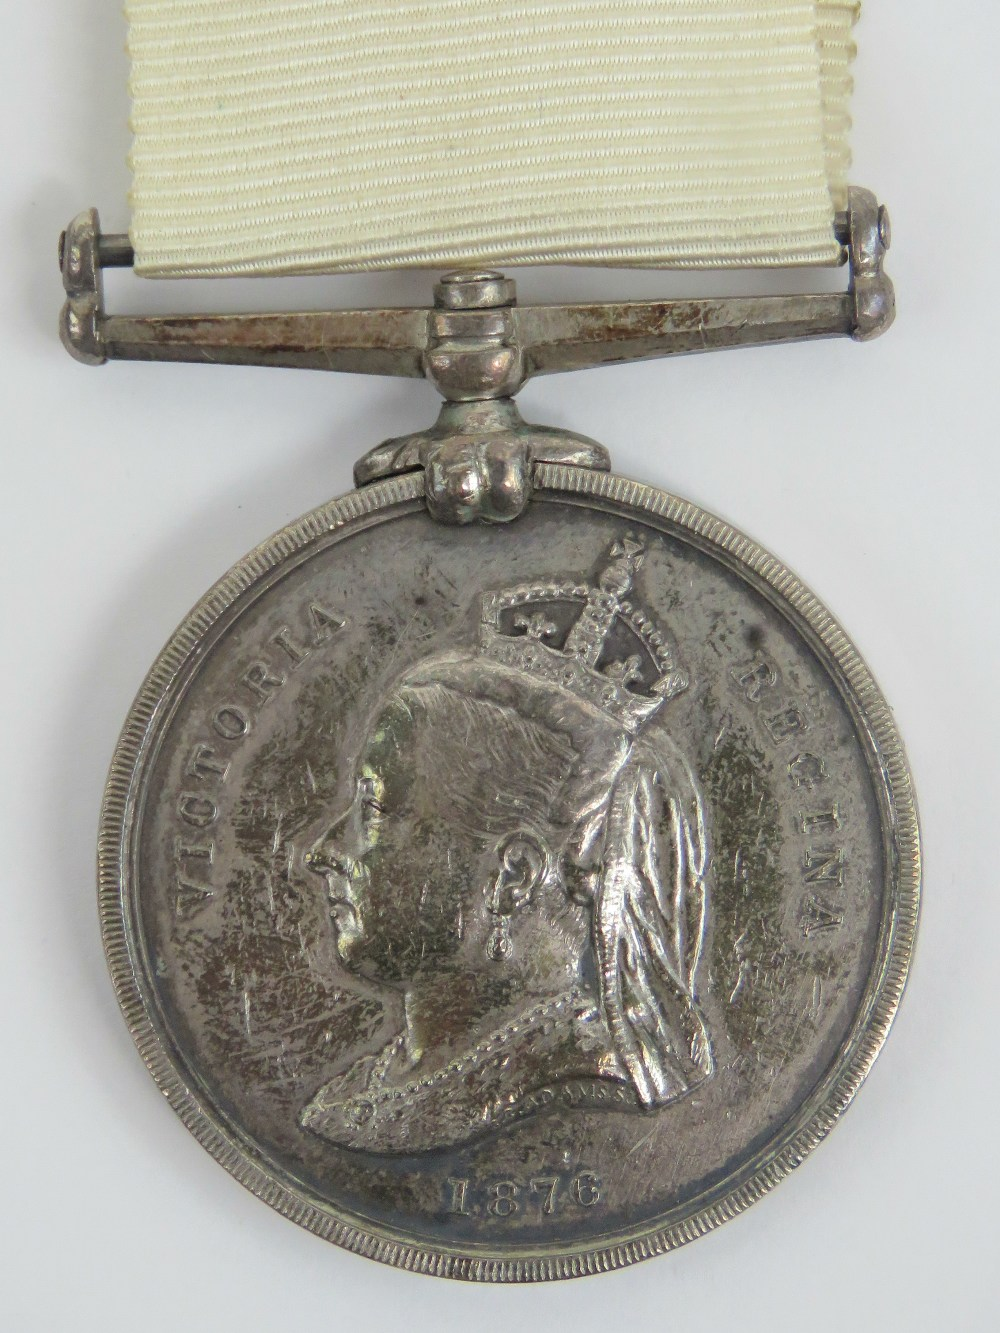 An Arctic medal with ribbon; British Arctic Expeditions of 1875-76, 'J. Cooper Pv OFFr 2 C? H.M.